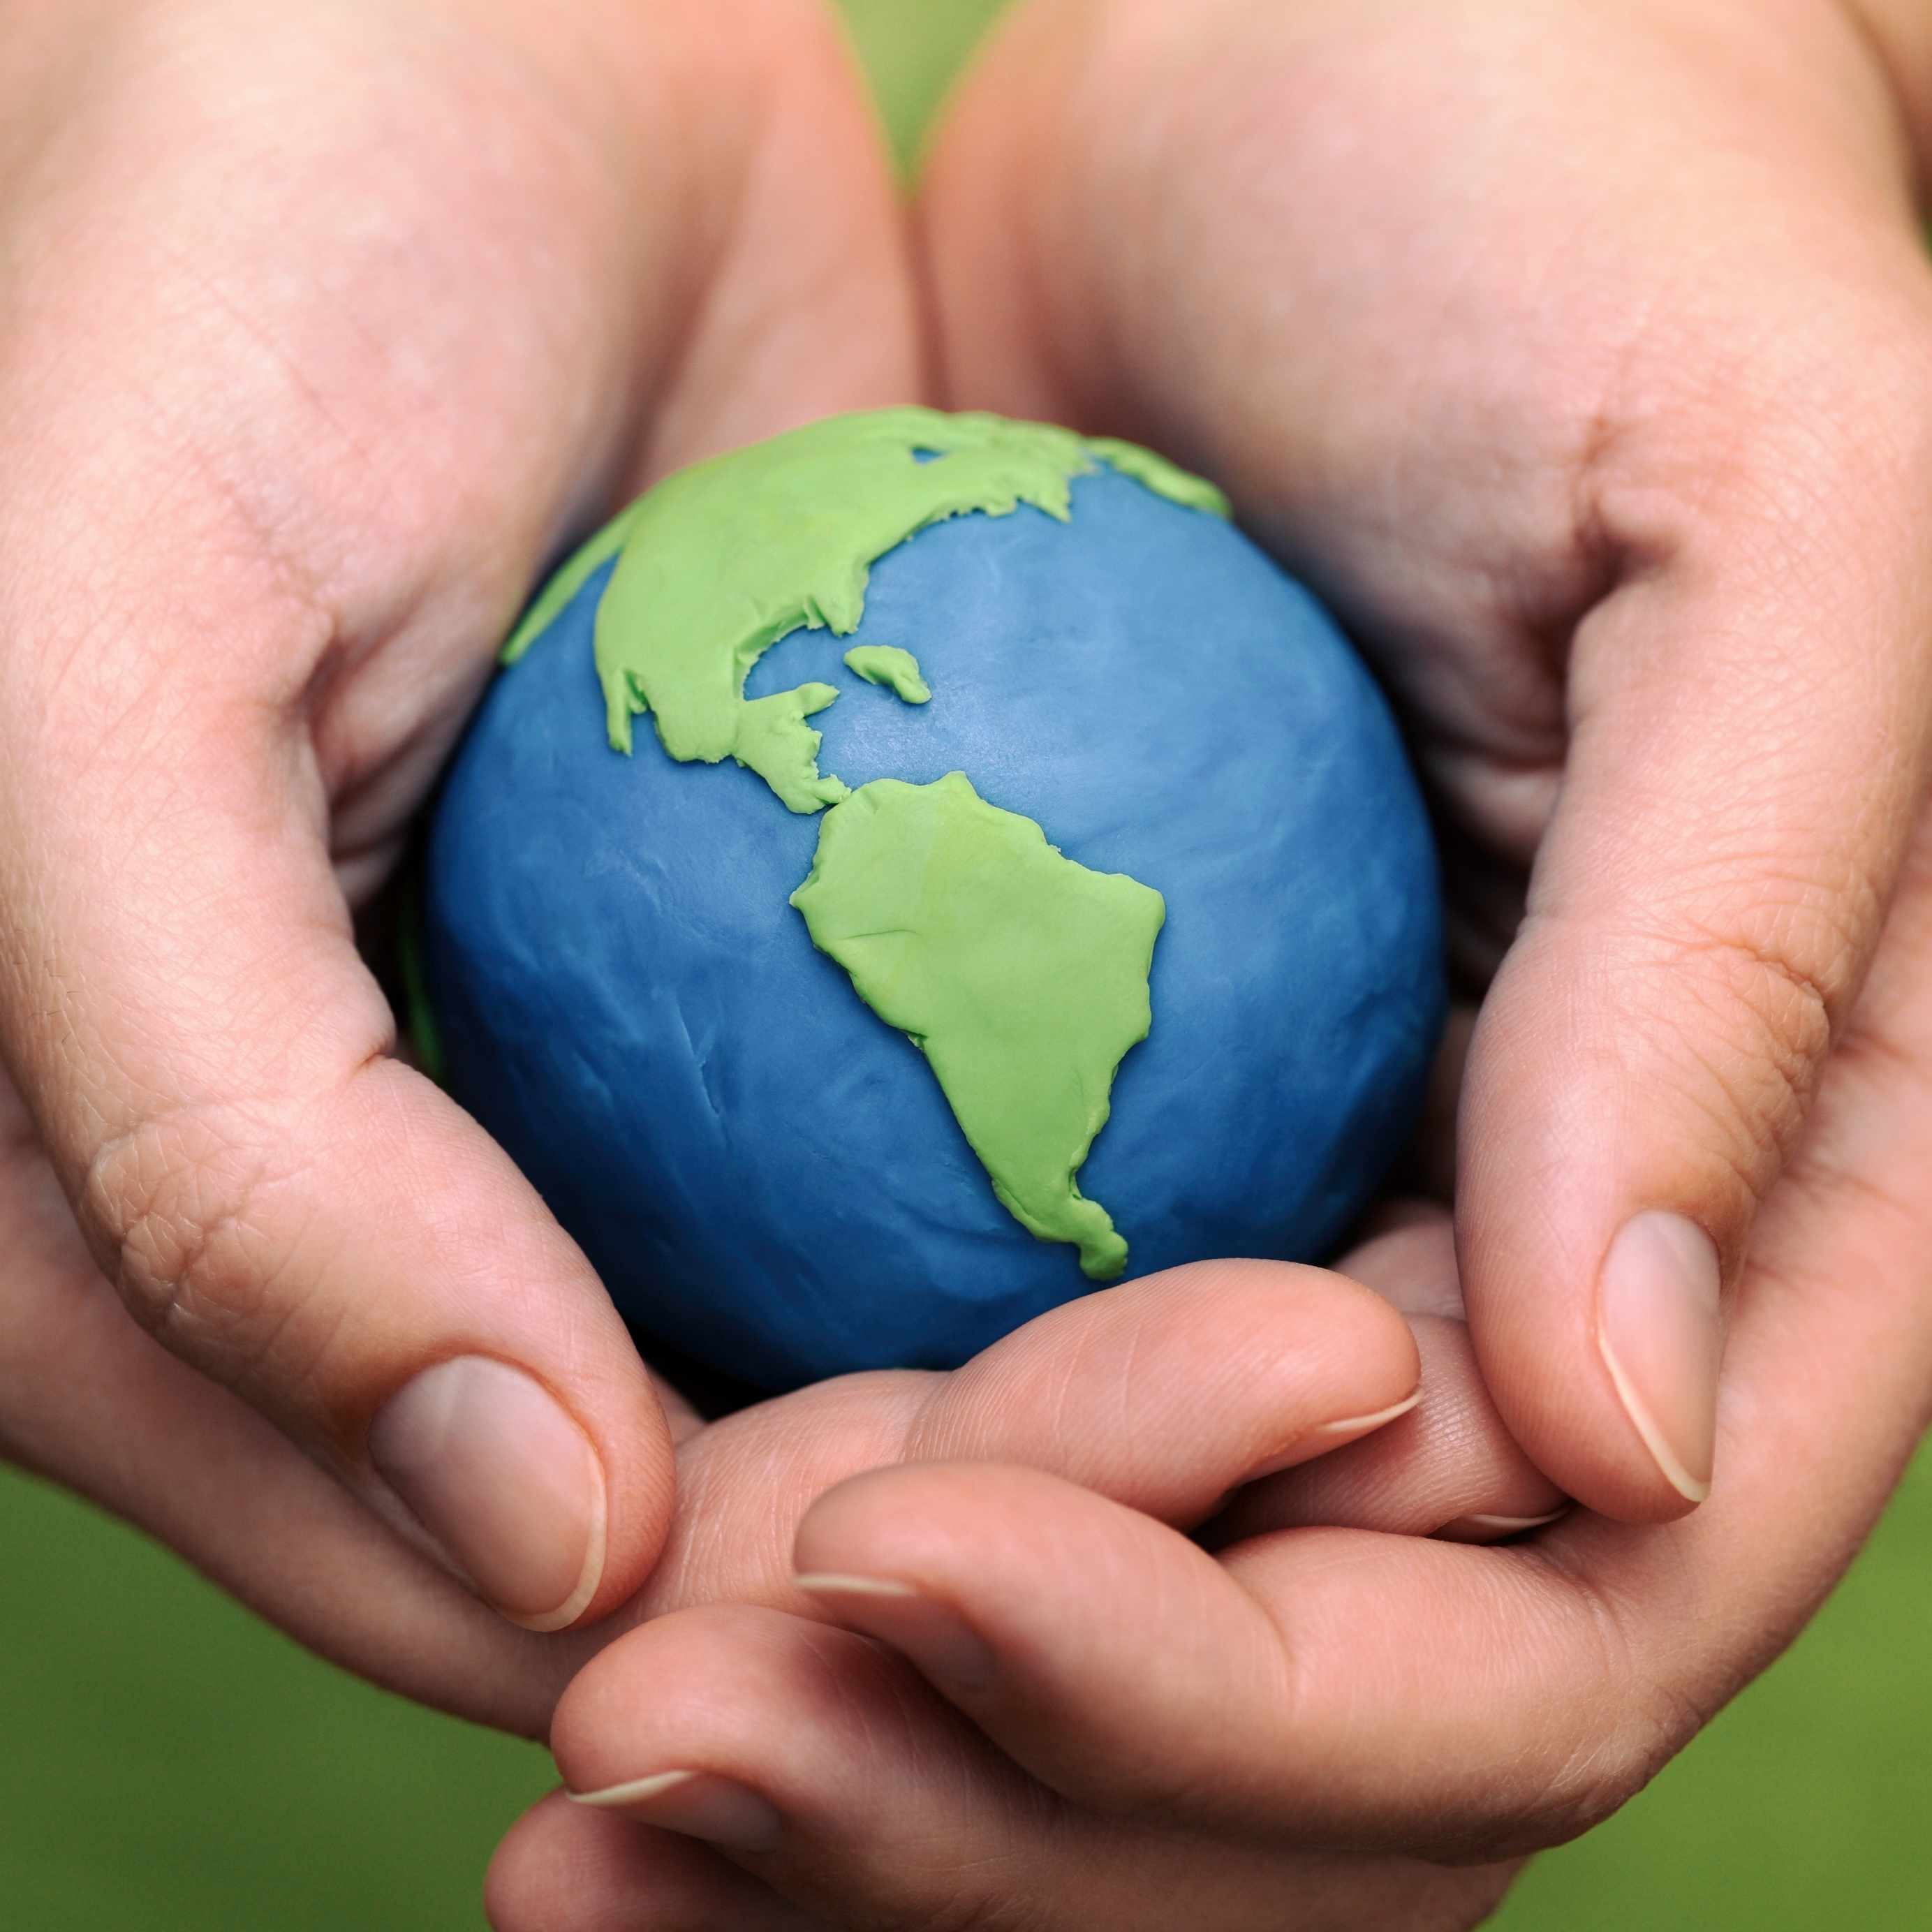 two hands holding a clay model of the earth, the world, a globe